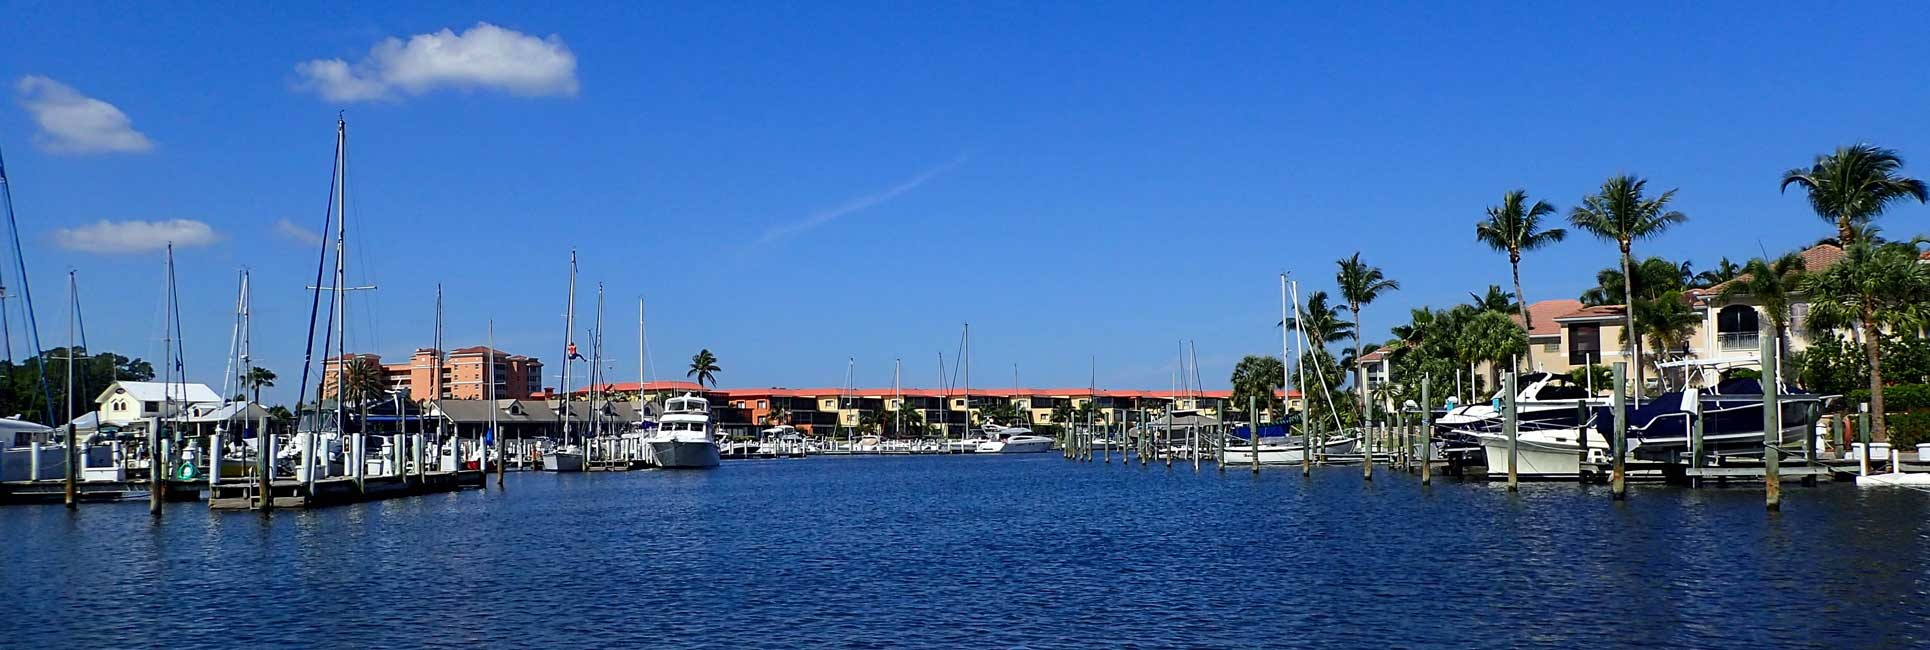 A bunch of fishing boats in a marina at Charlotte Harbor, Florida.